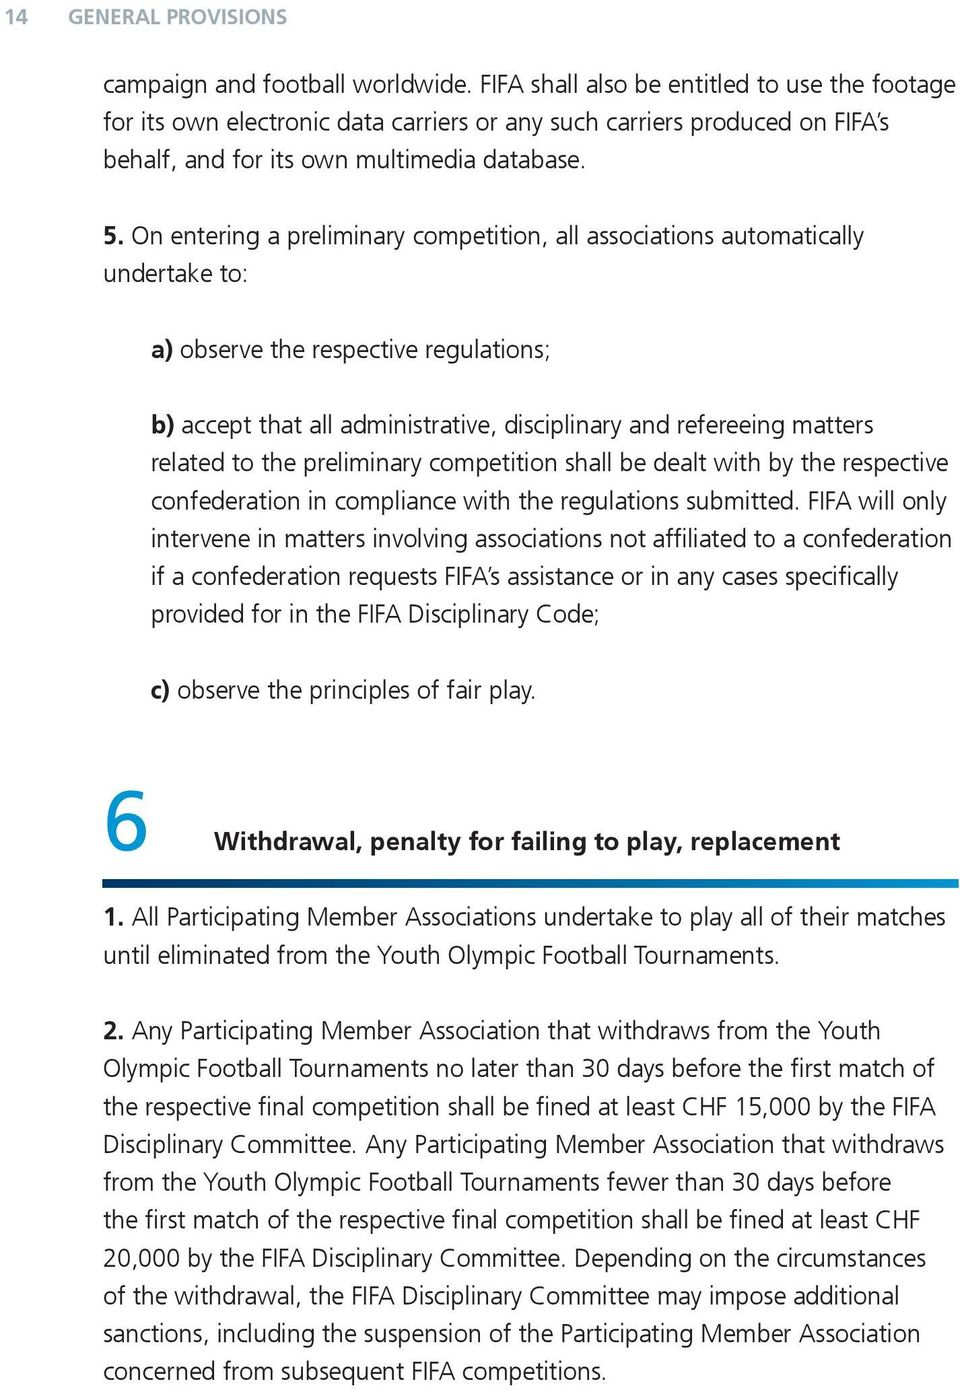 On entering a preliminary competition, all associations automatically undertake to: a) observe the respective regulations; b) accept that all administrative, disciplinary and refereeing matters